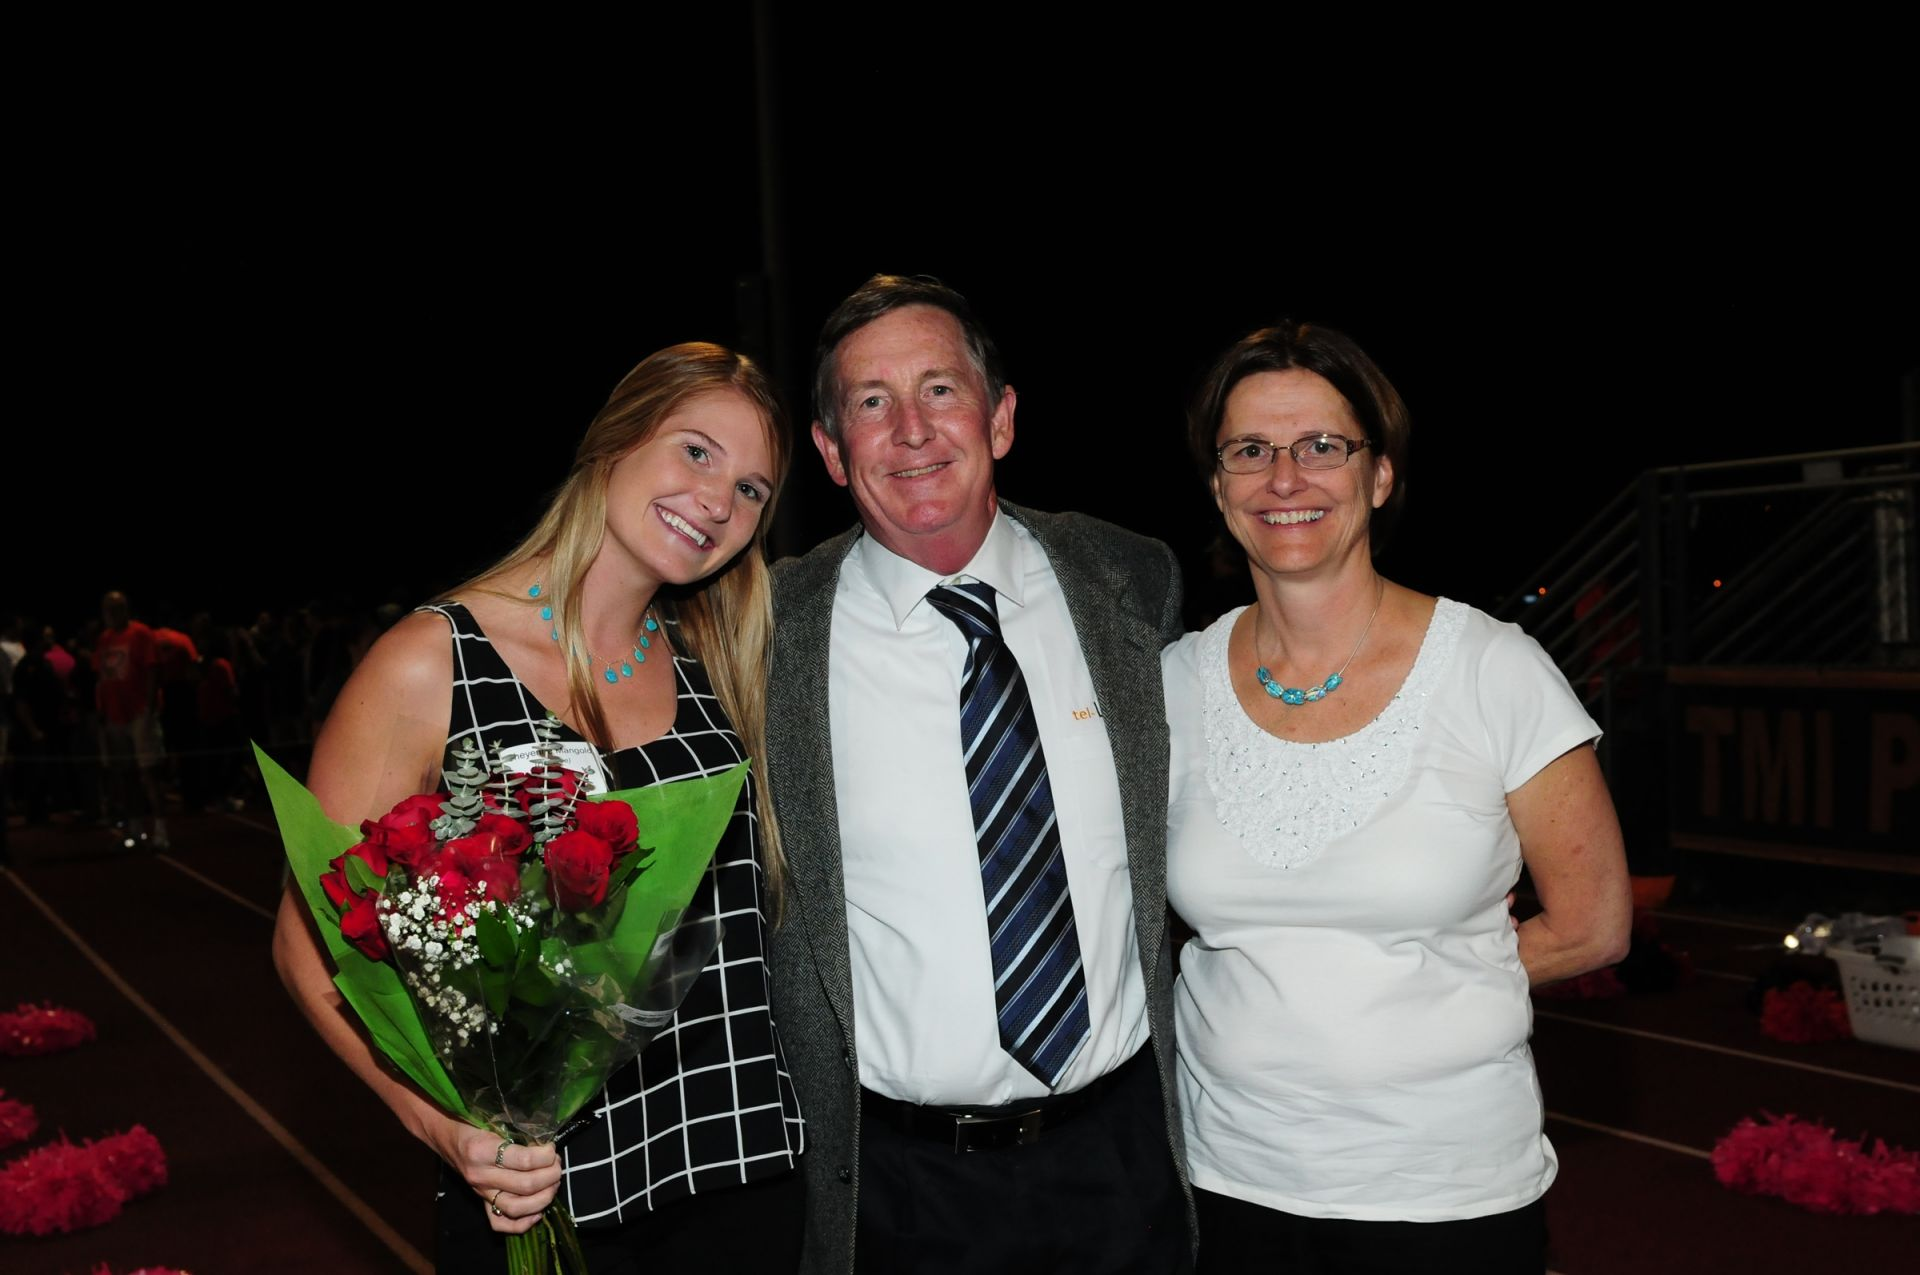 Cheyenne Mangold '07 parents Andrew and Laurie on field 2015